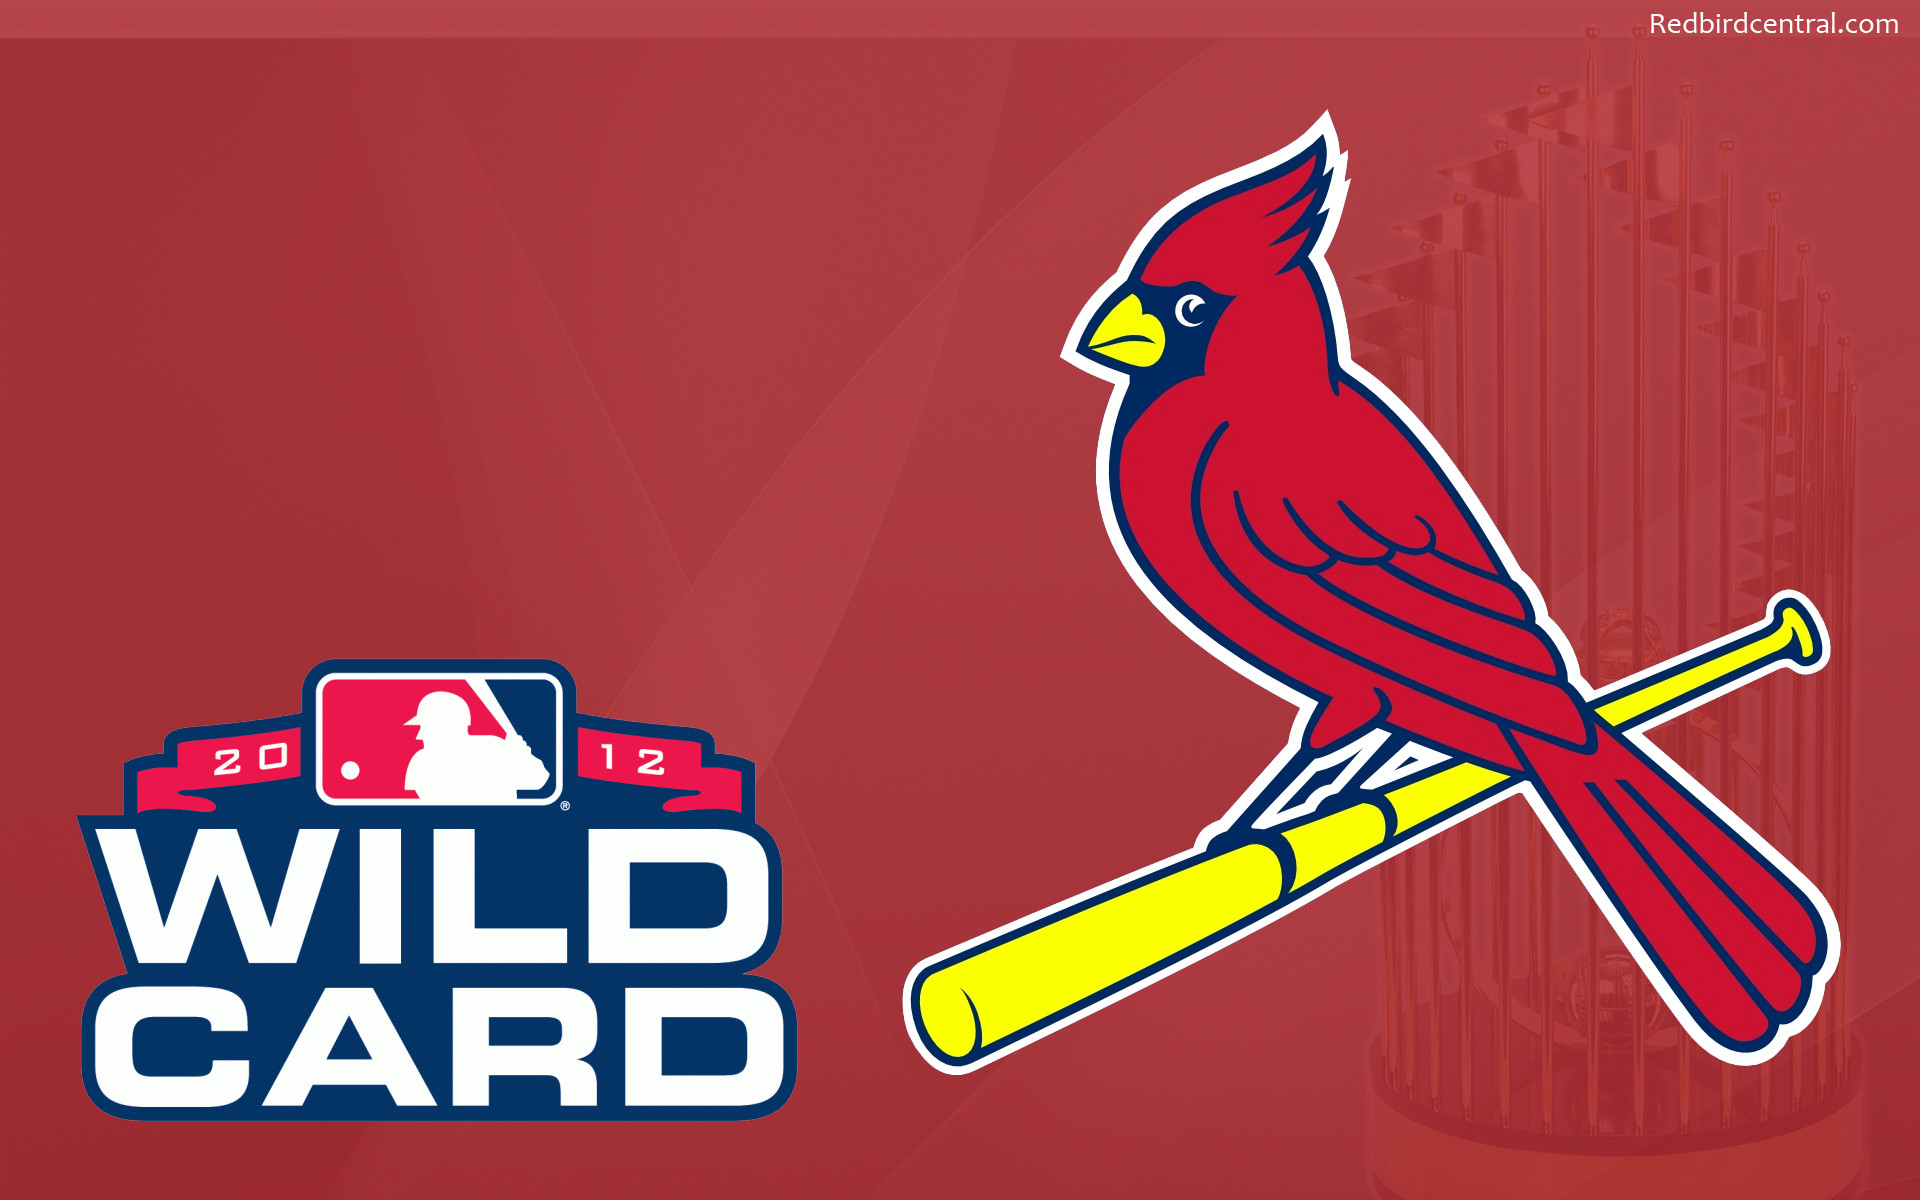 1920x1200 ST_ LOUIS CARDINALS baseball mlb dg wallpaper |  | 159453 |  WallpaperUP